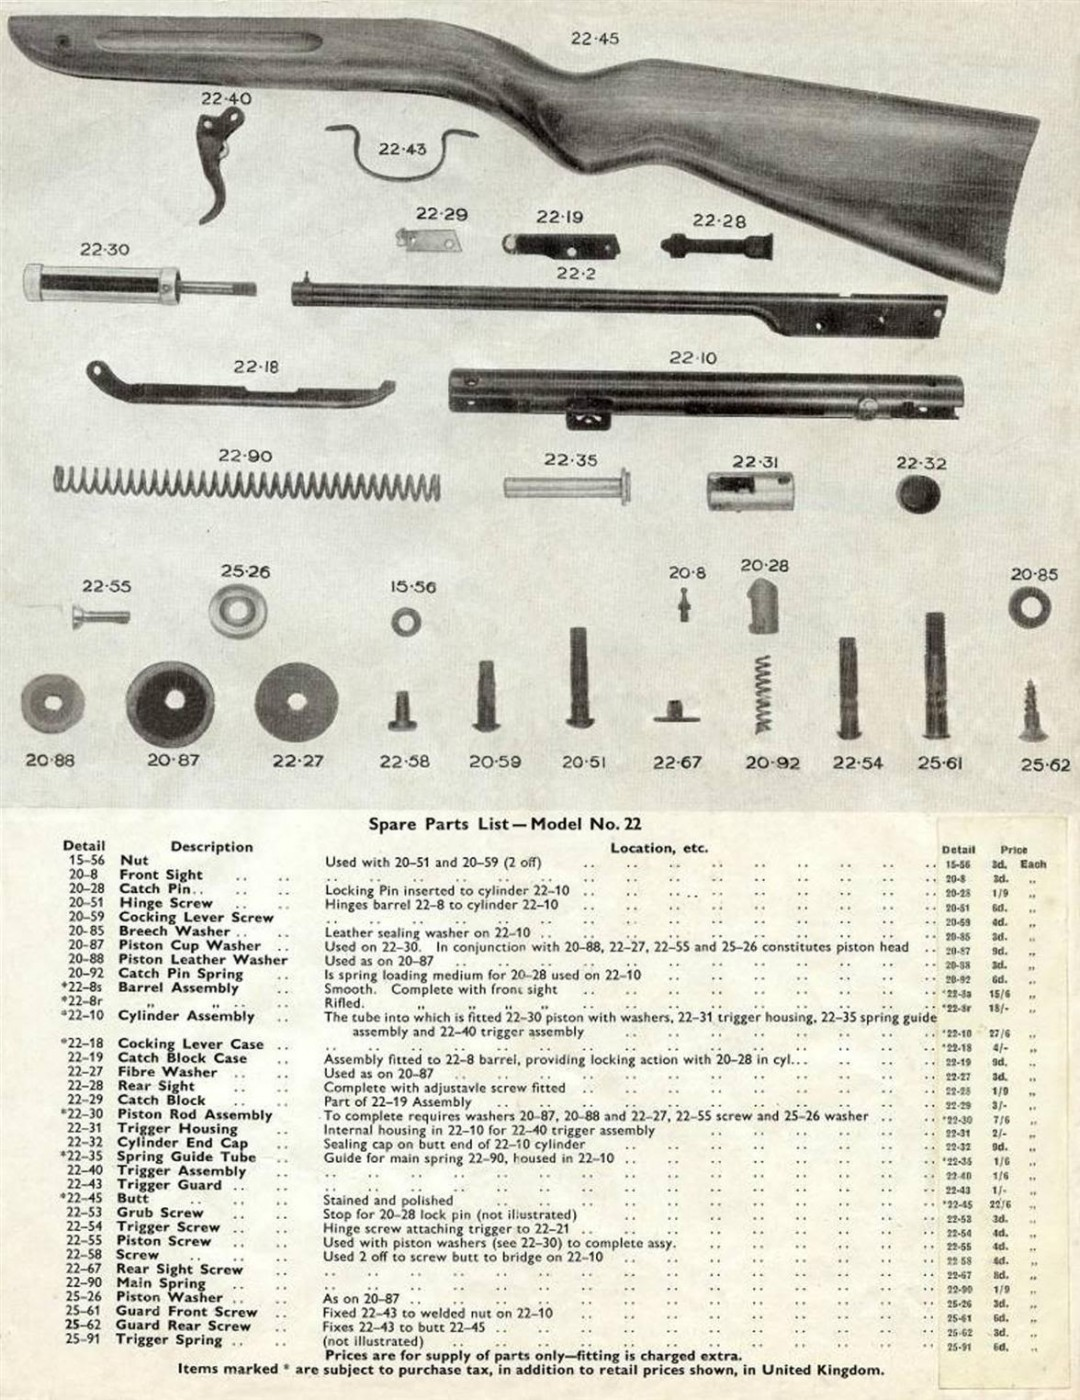 diana / milbro airguns manuals | diana resources | vintage ... chevy 34 engine diagram diana model 34 parts diagram